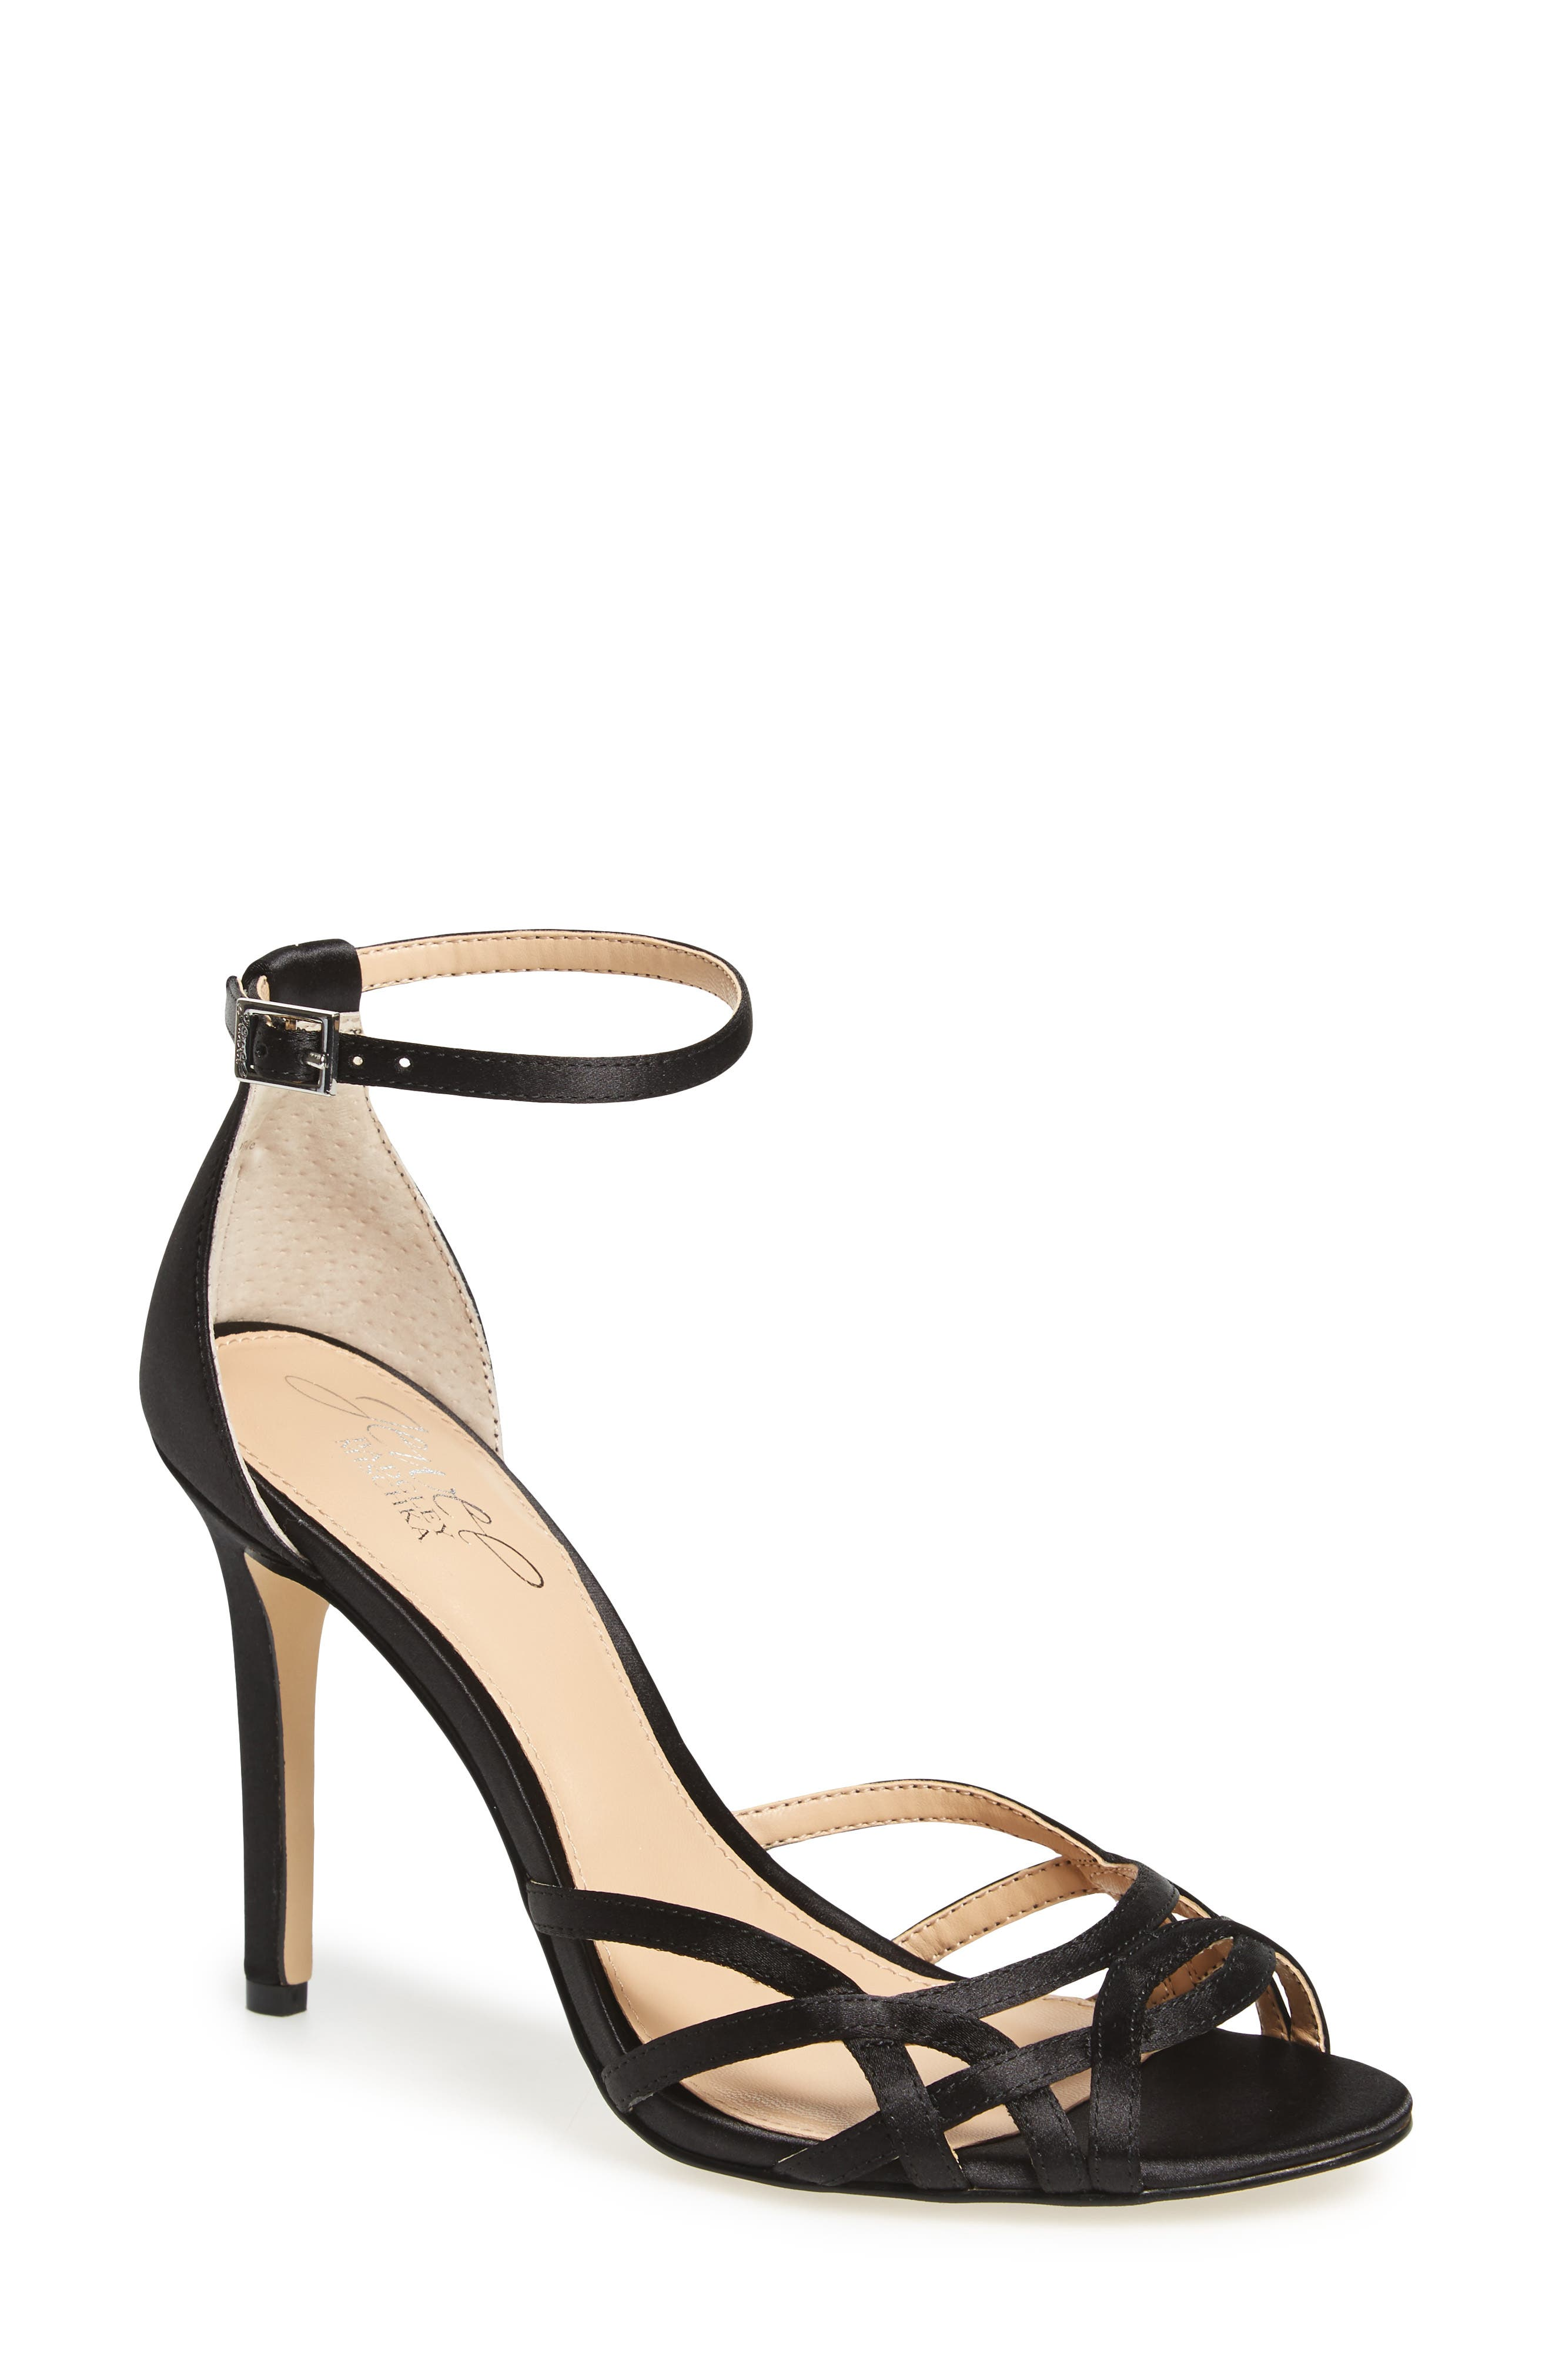 JEWEL BADGLEY MISCHKA Haskell II Strappy Sandal, Main, color, 015